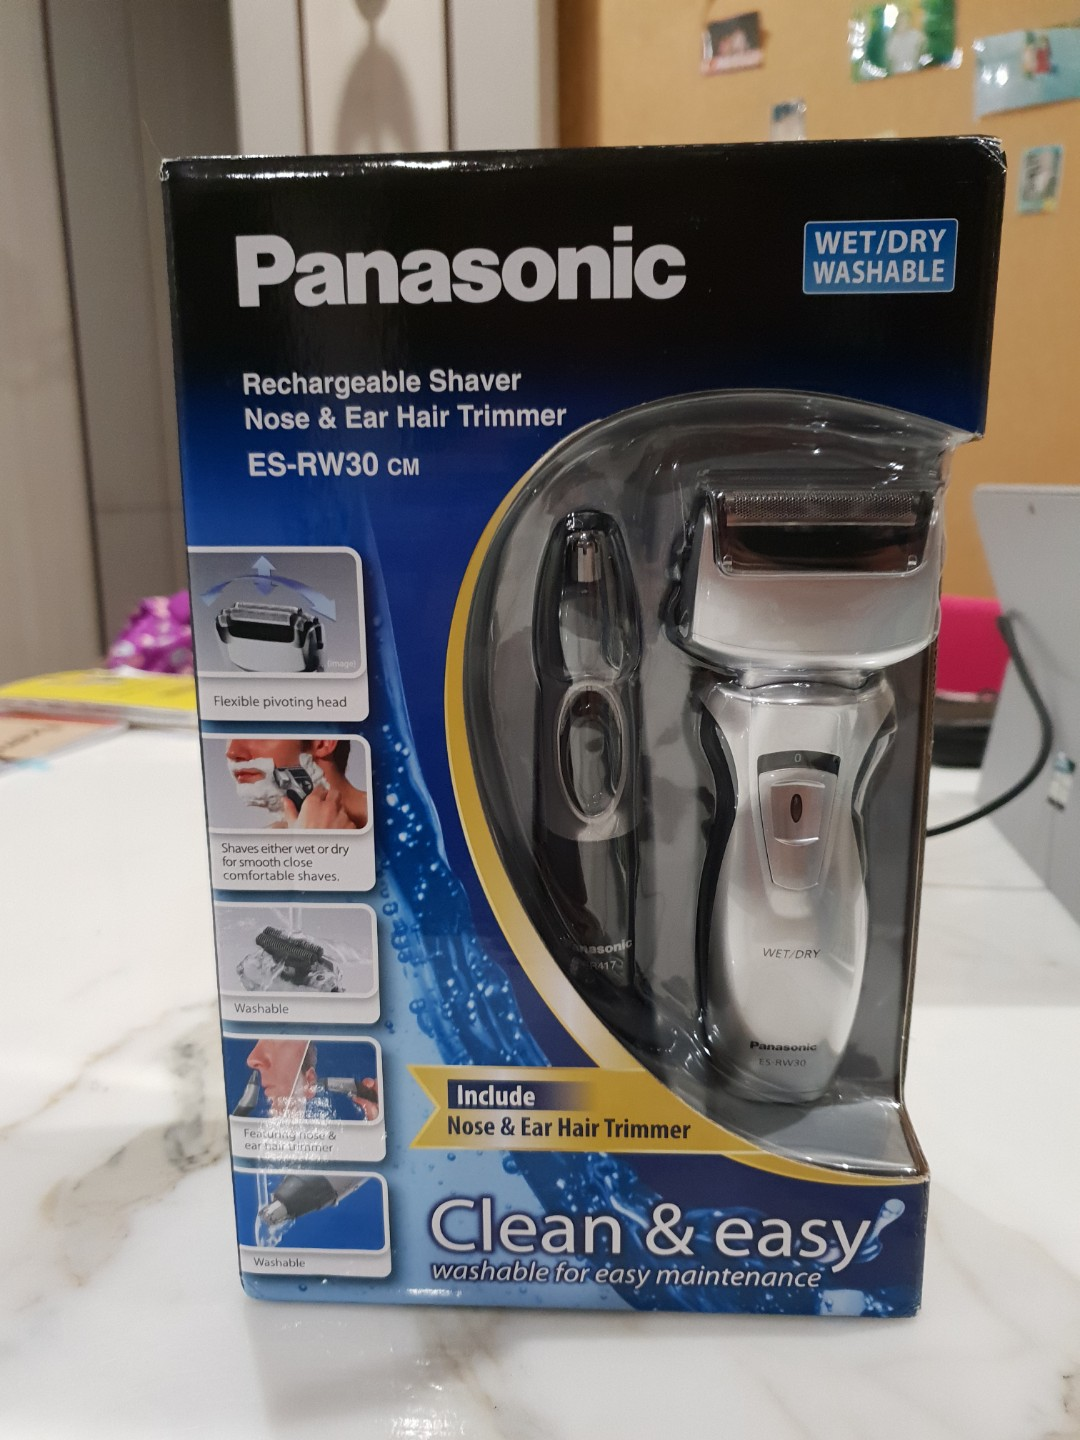 Panasonic rechargeable shaver + nose & ear hair trimmer